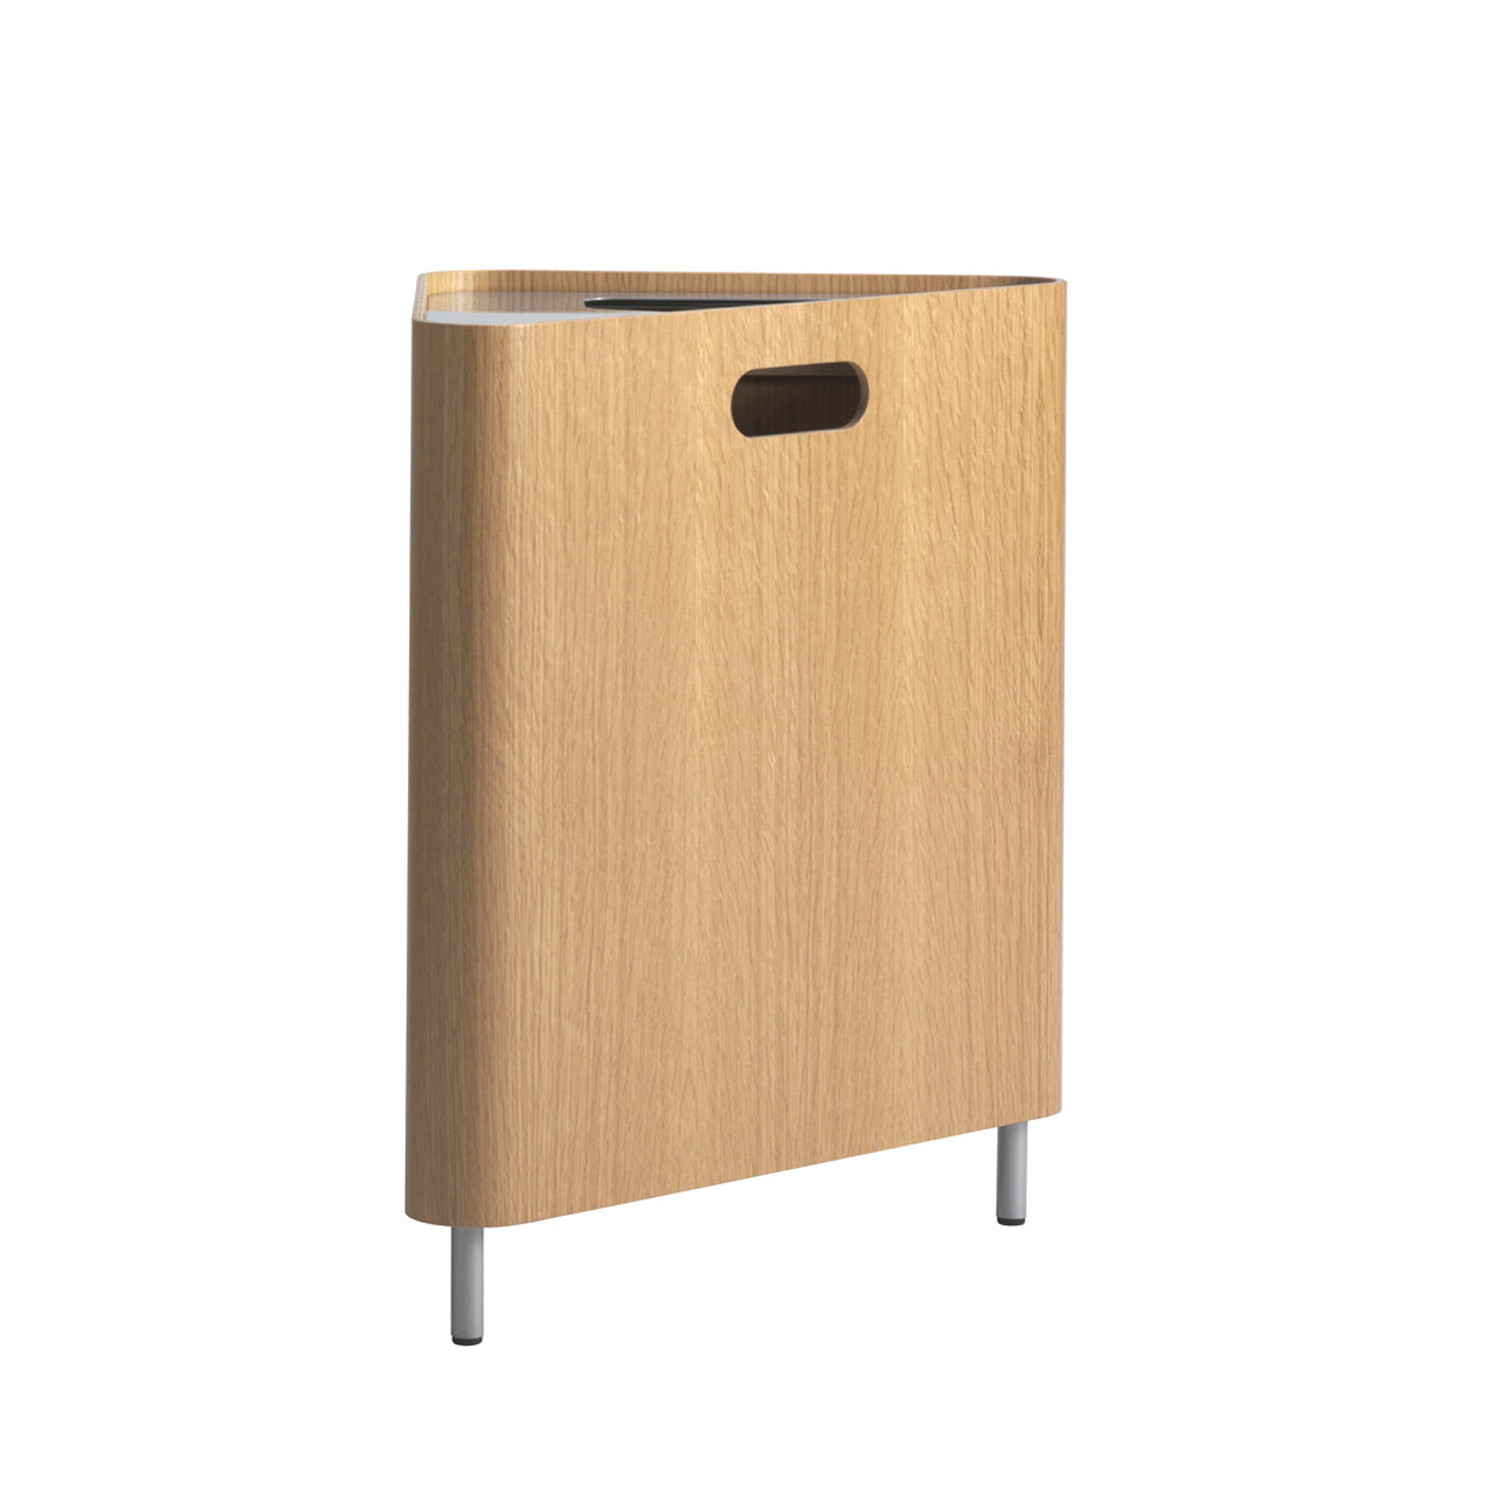 Designer Waste Paper Bins Uk